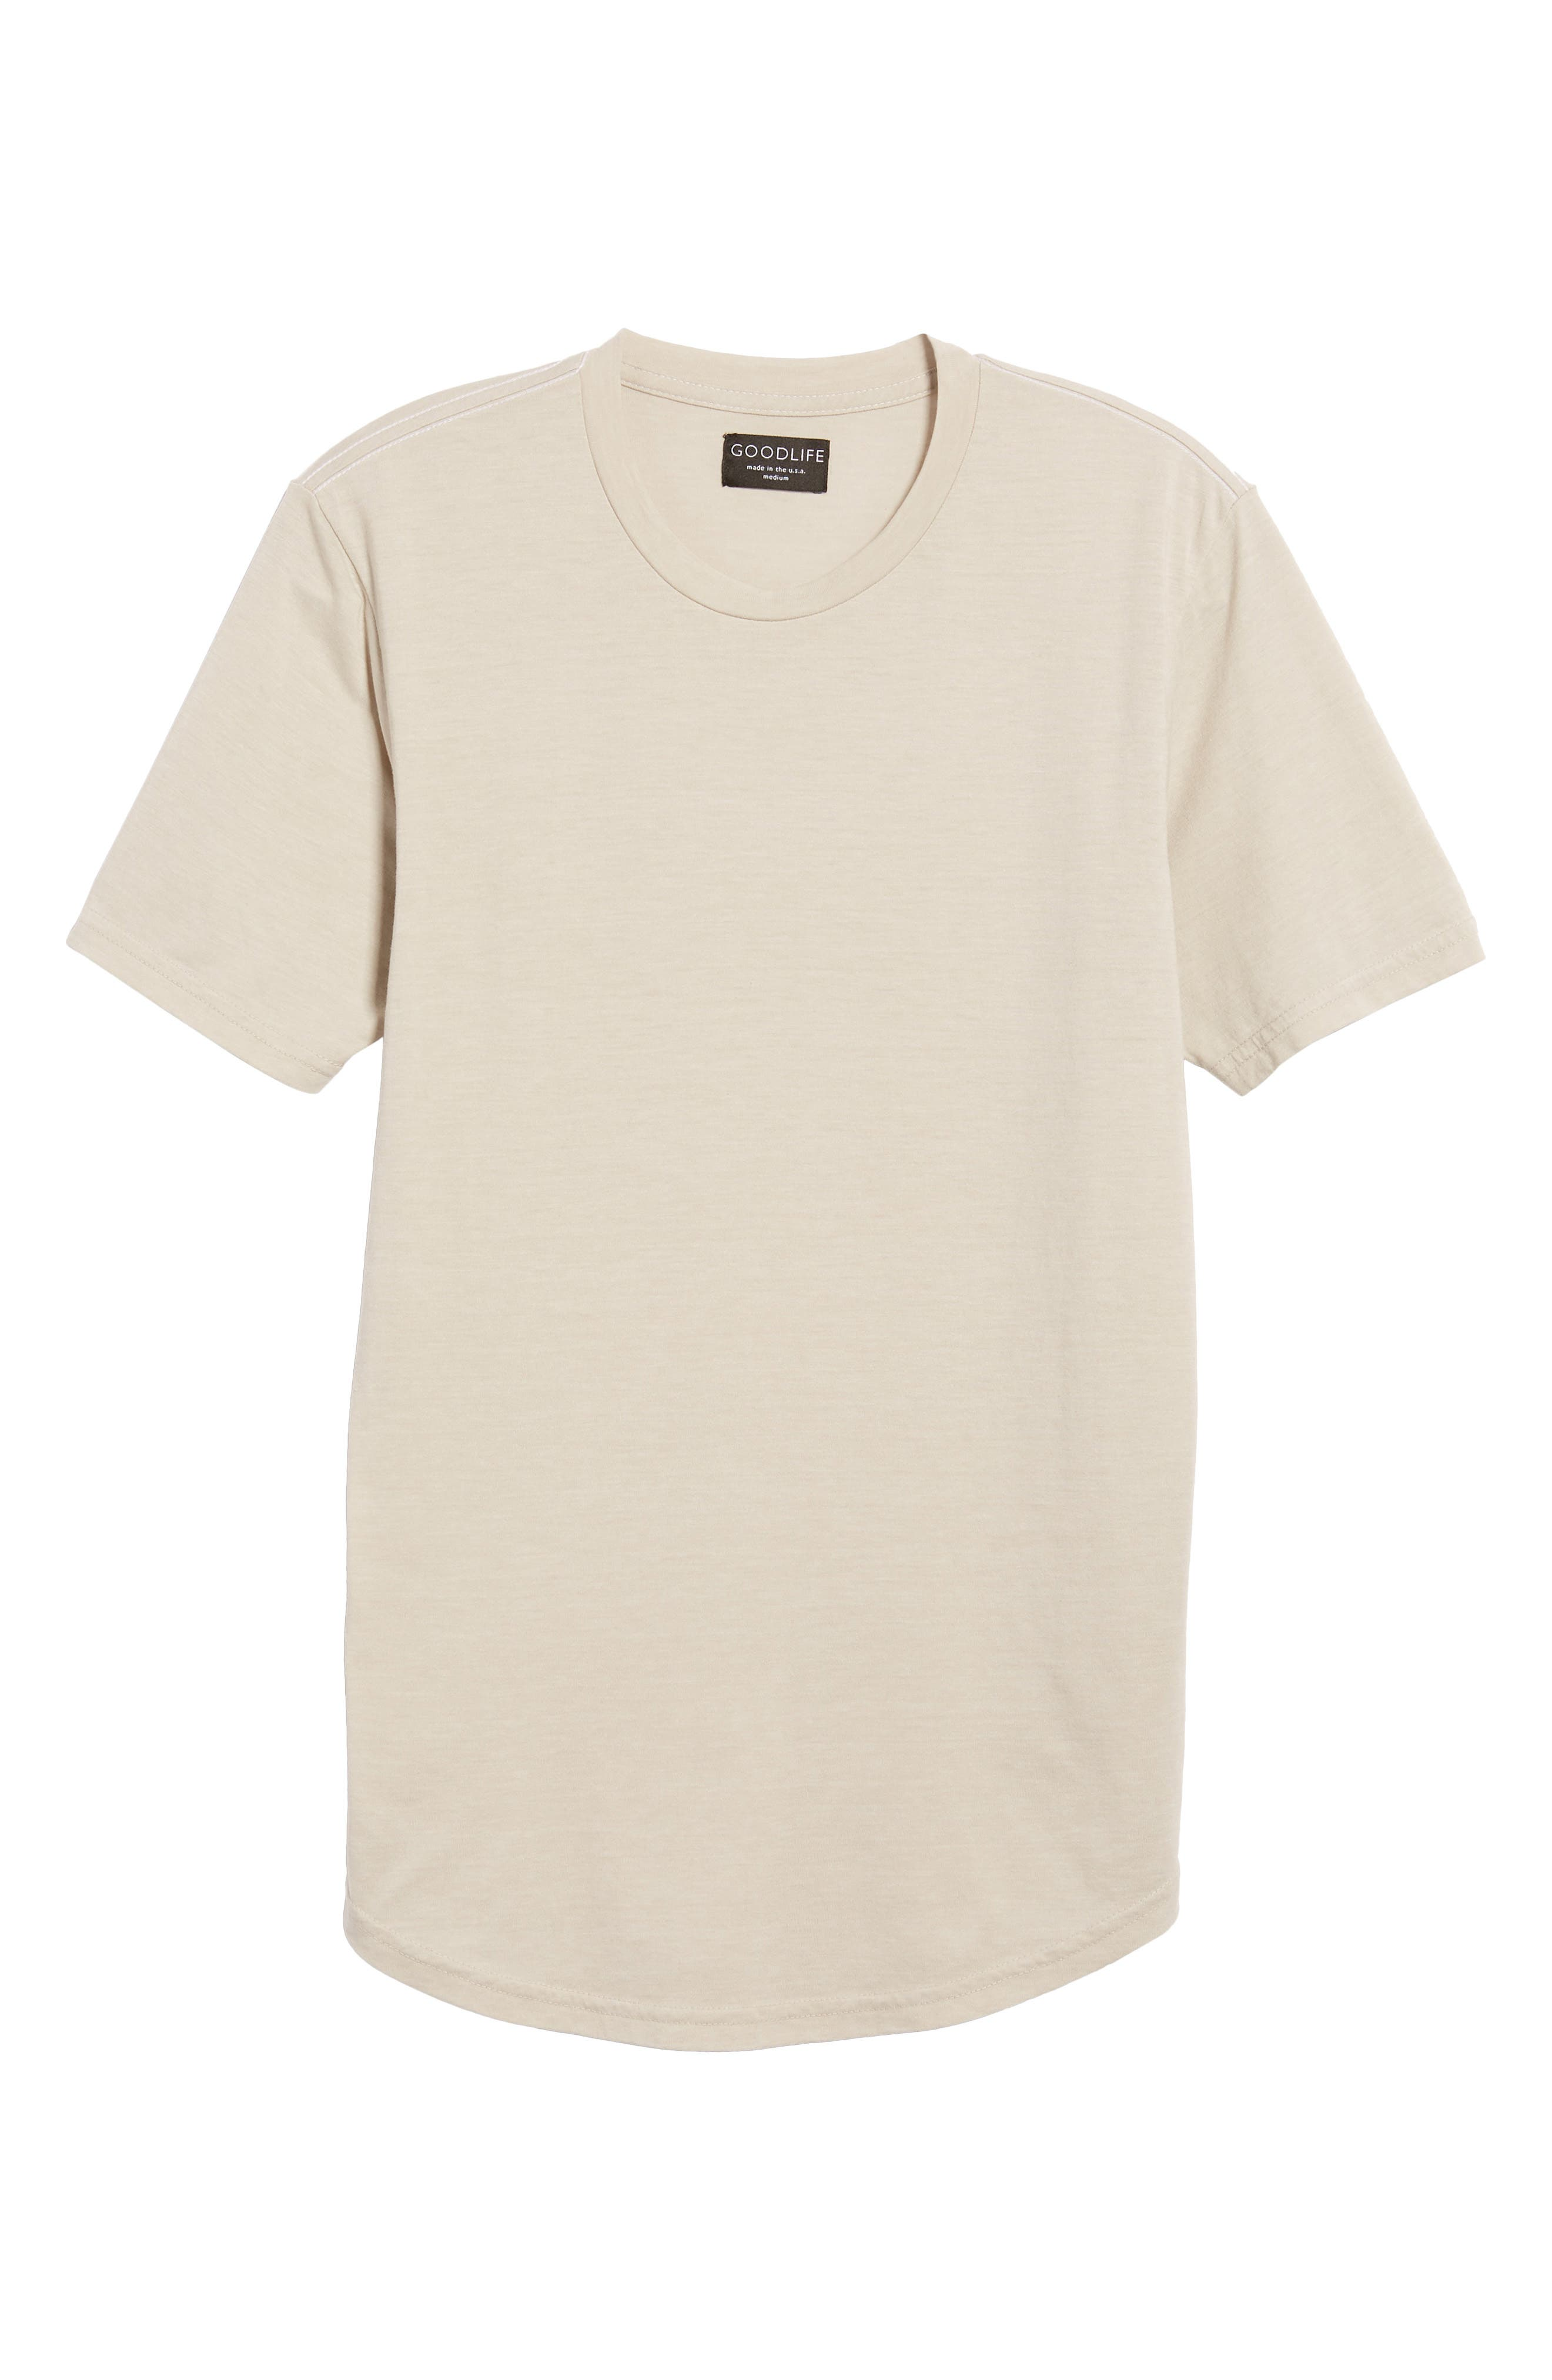 Scallop Triblend Crewneck T-Shirt,                             Alternate thumbnail 6, color,                             020